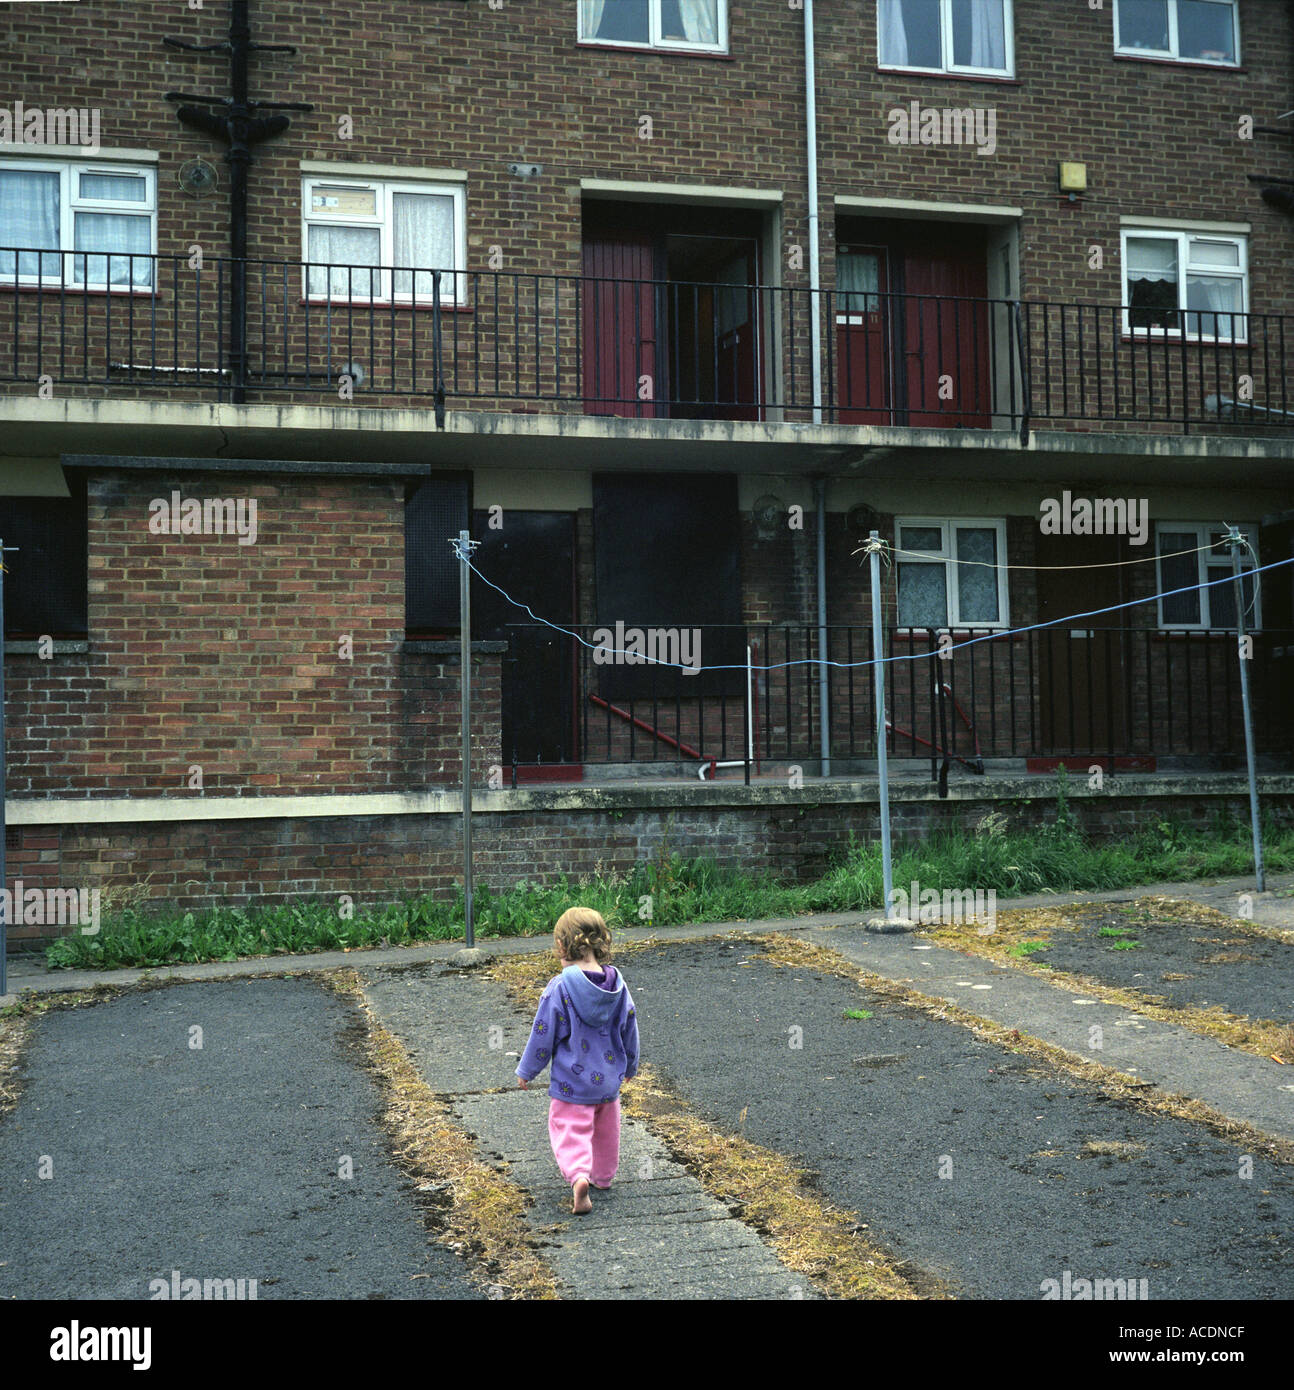 A young girl playing in a council estate in Bristol, UK. Stock Photo